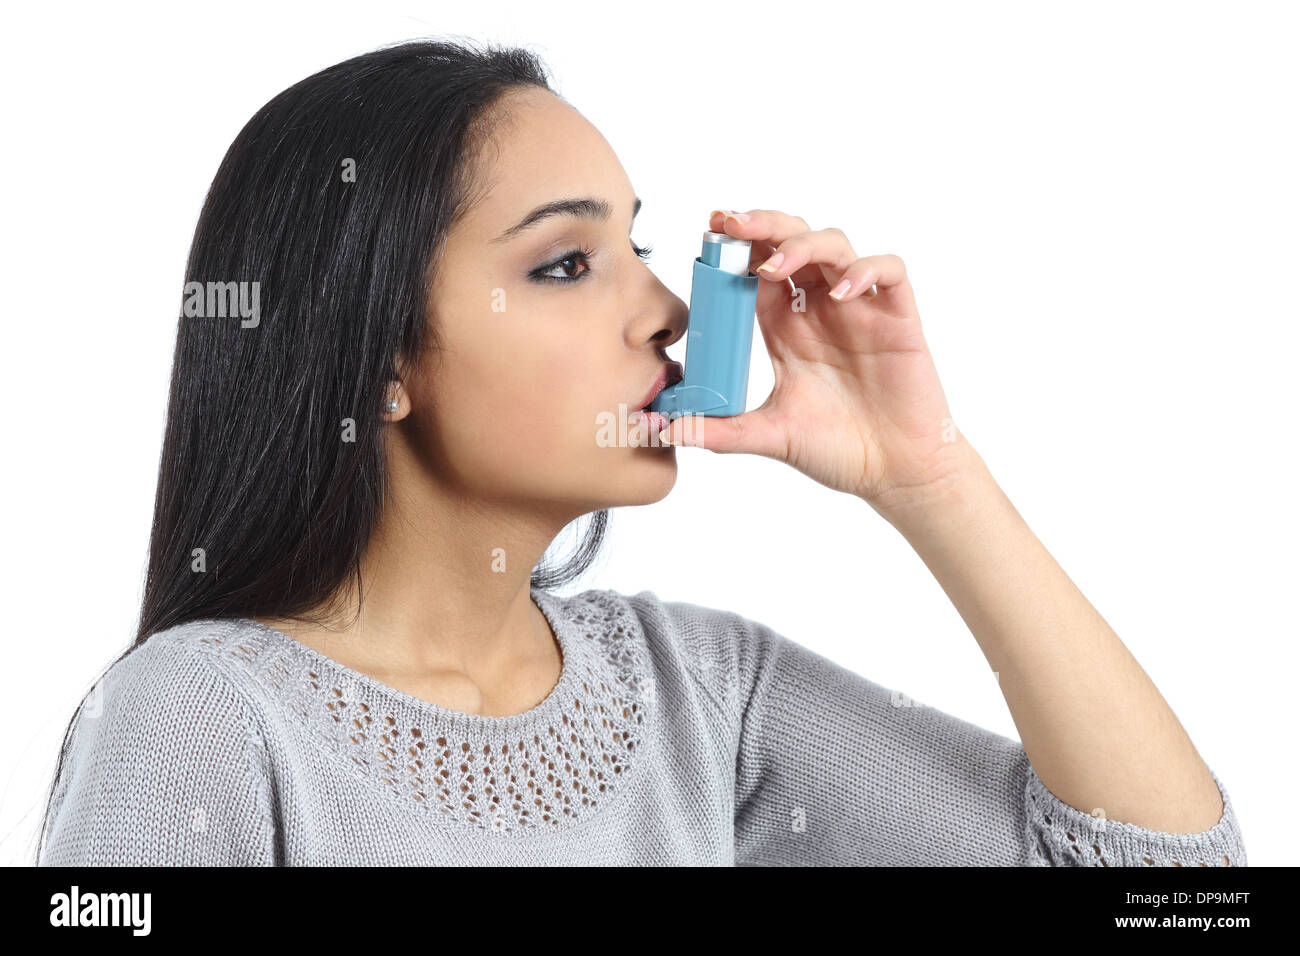 Asthmatic arab woman breathing from a inhaler isolated on a white background - Stock Image